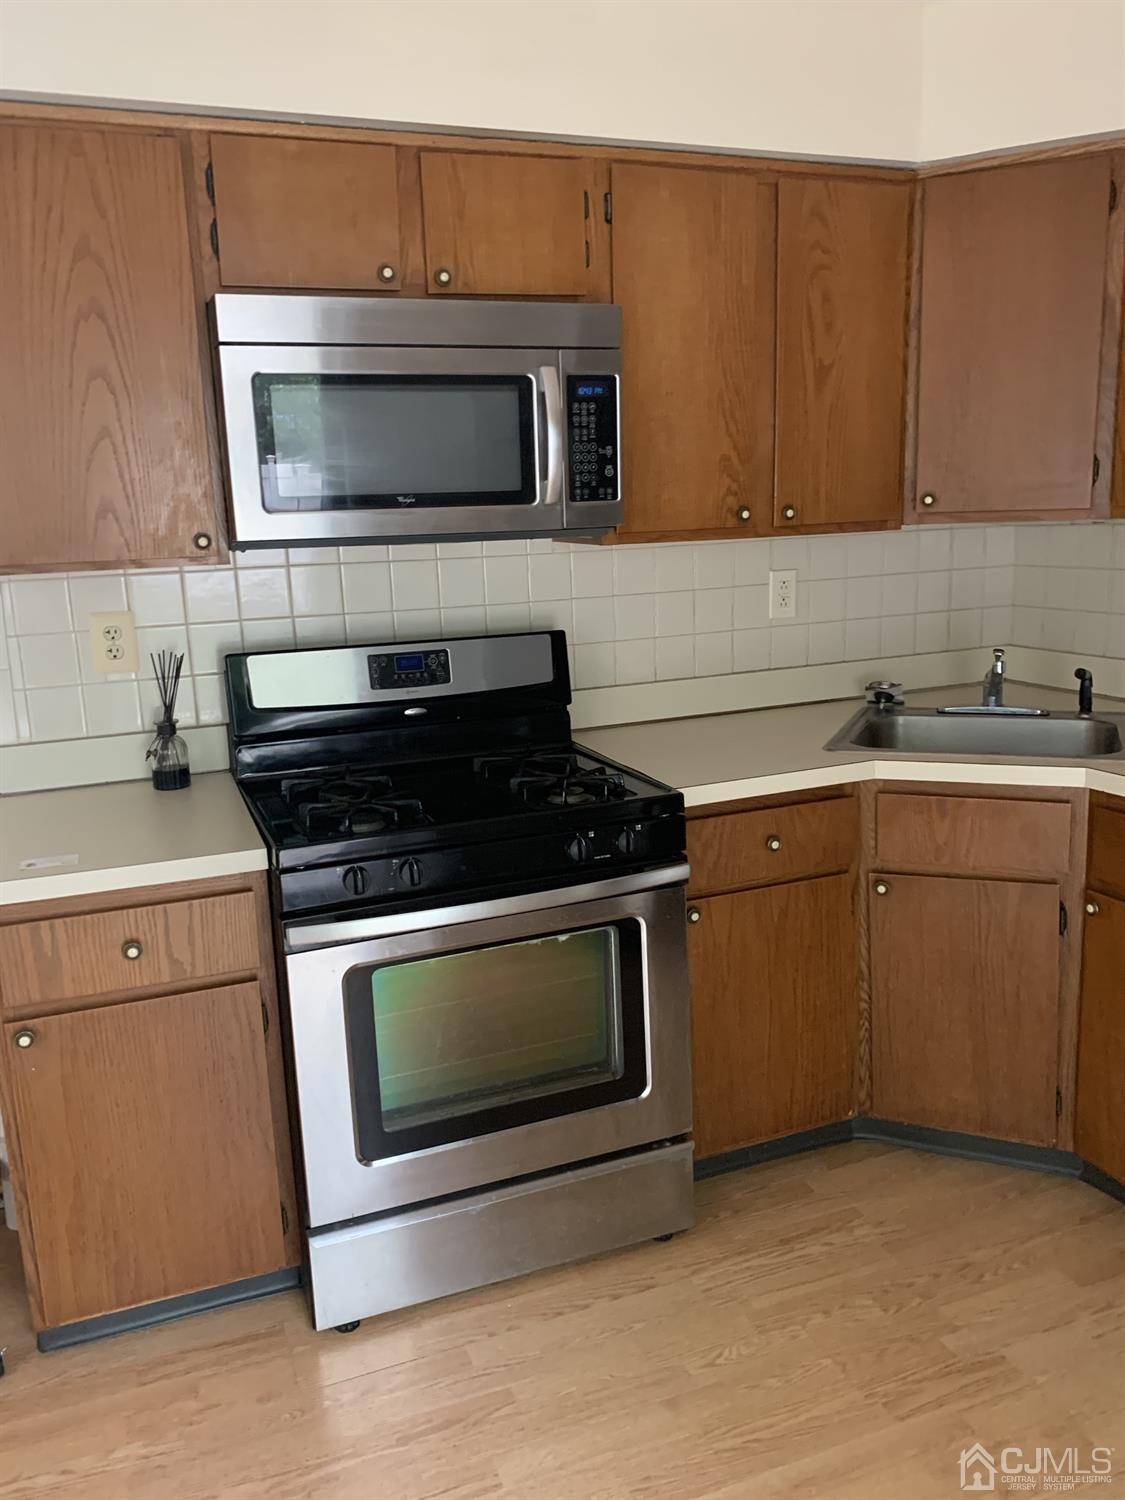 Kitchen stove and empty counters